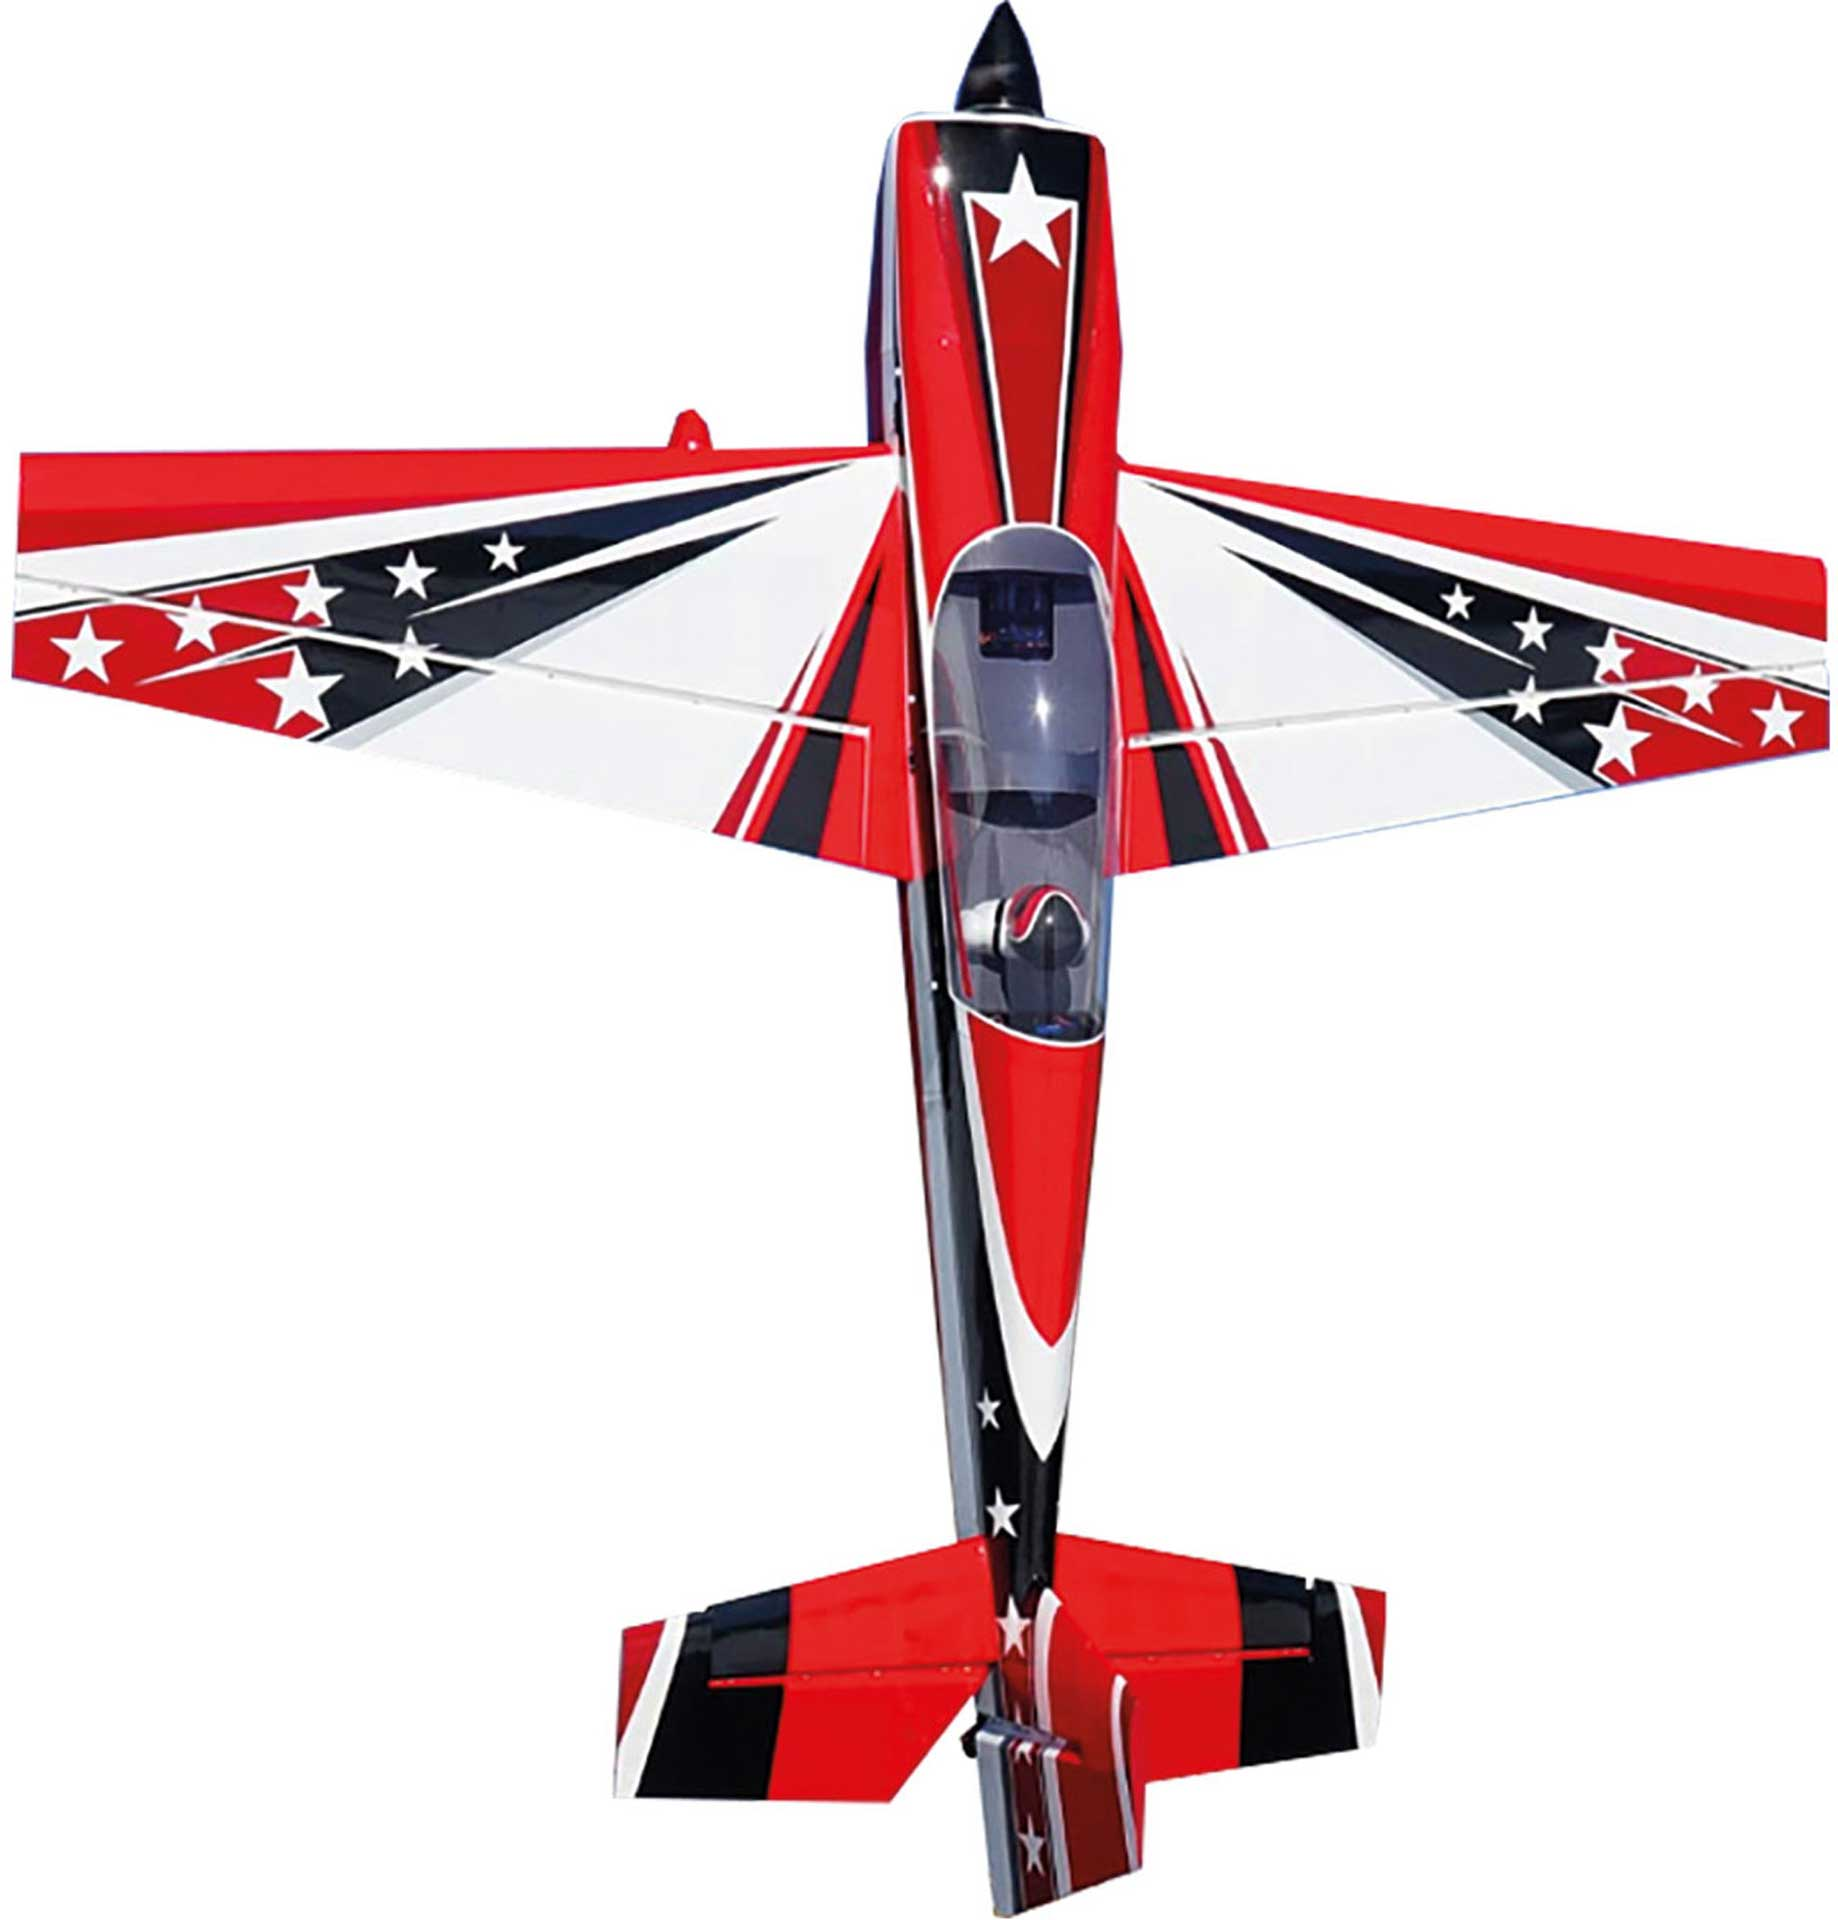 "EXTREMEFLIGHT-RC EXTRA 300 104"" ROT/WEISS ARF"